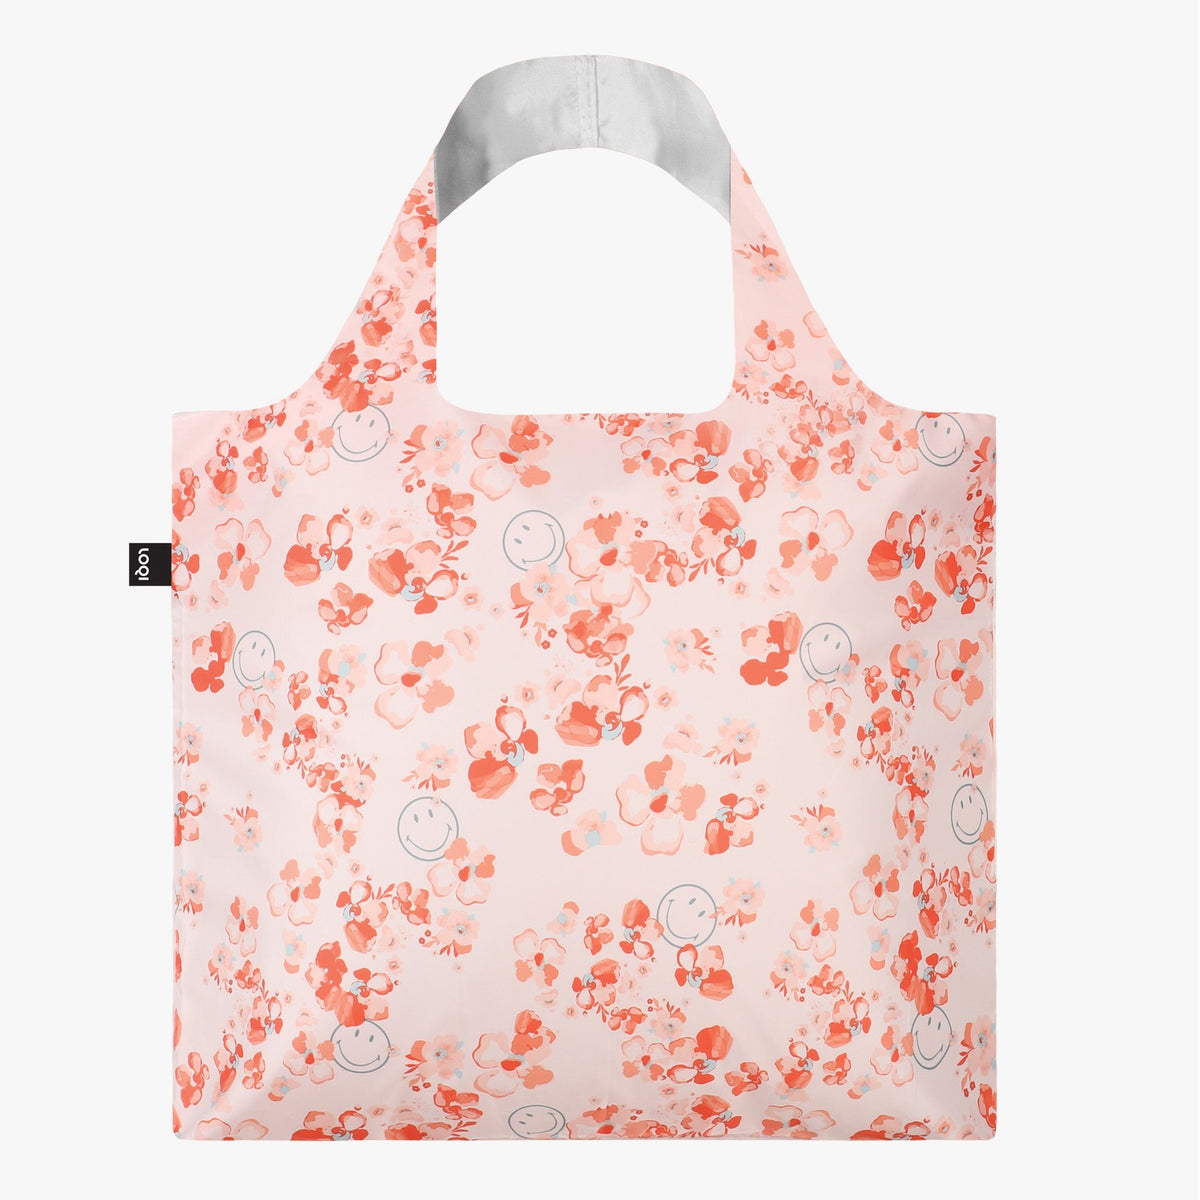 Blossom Recycled Bag